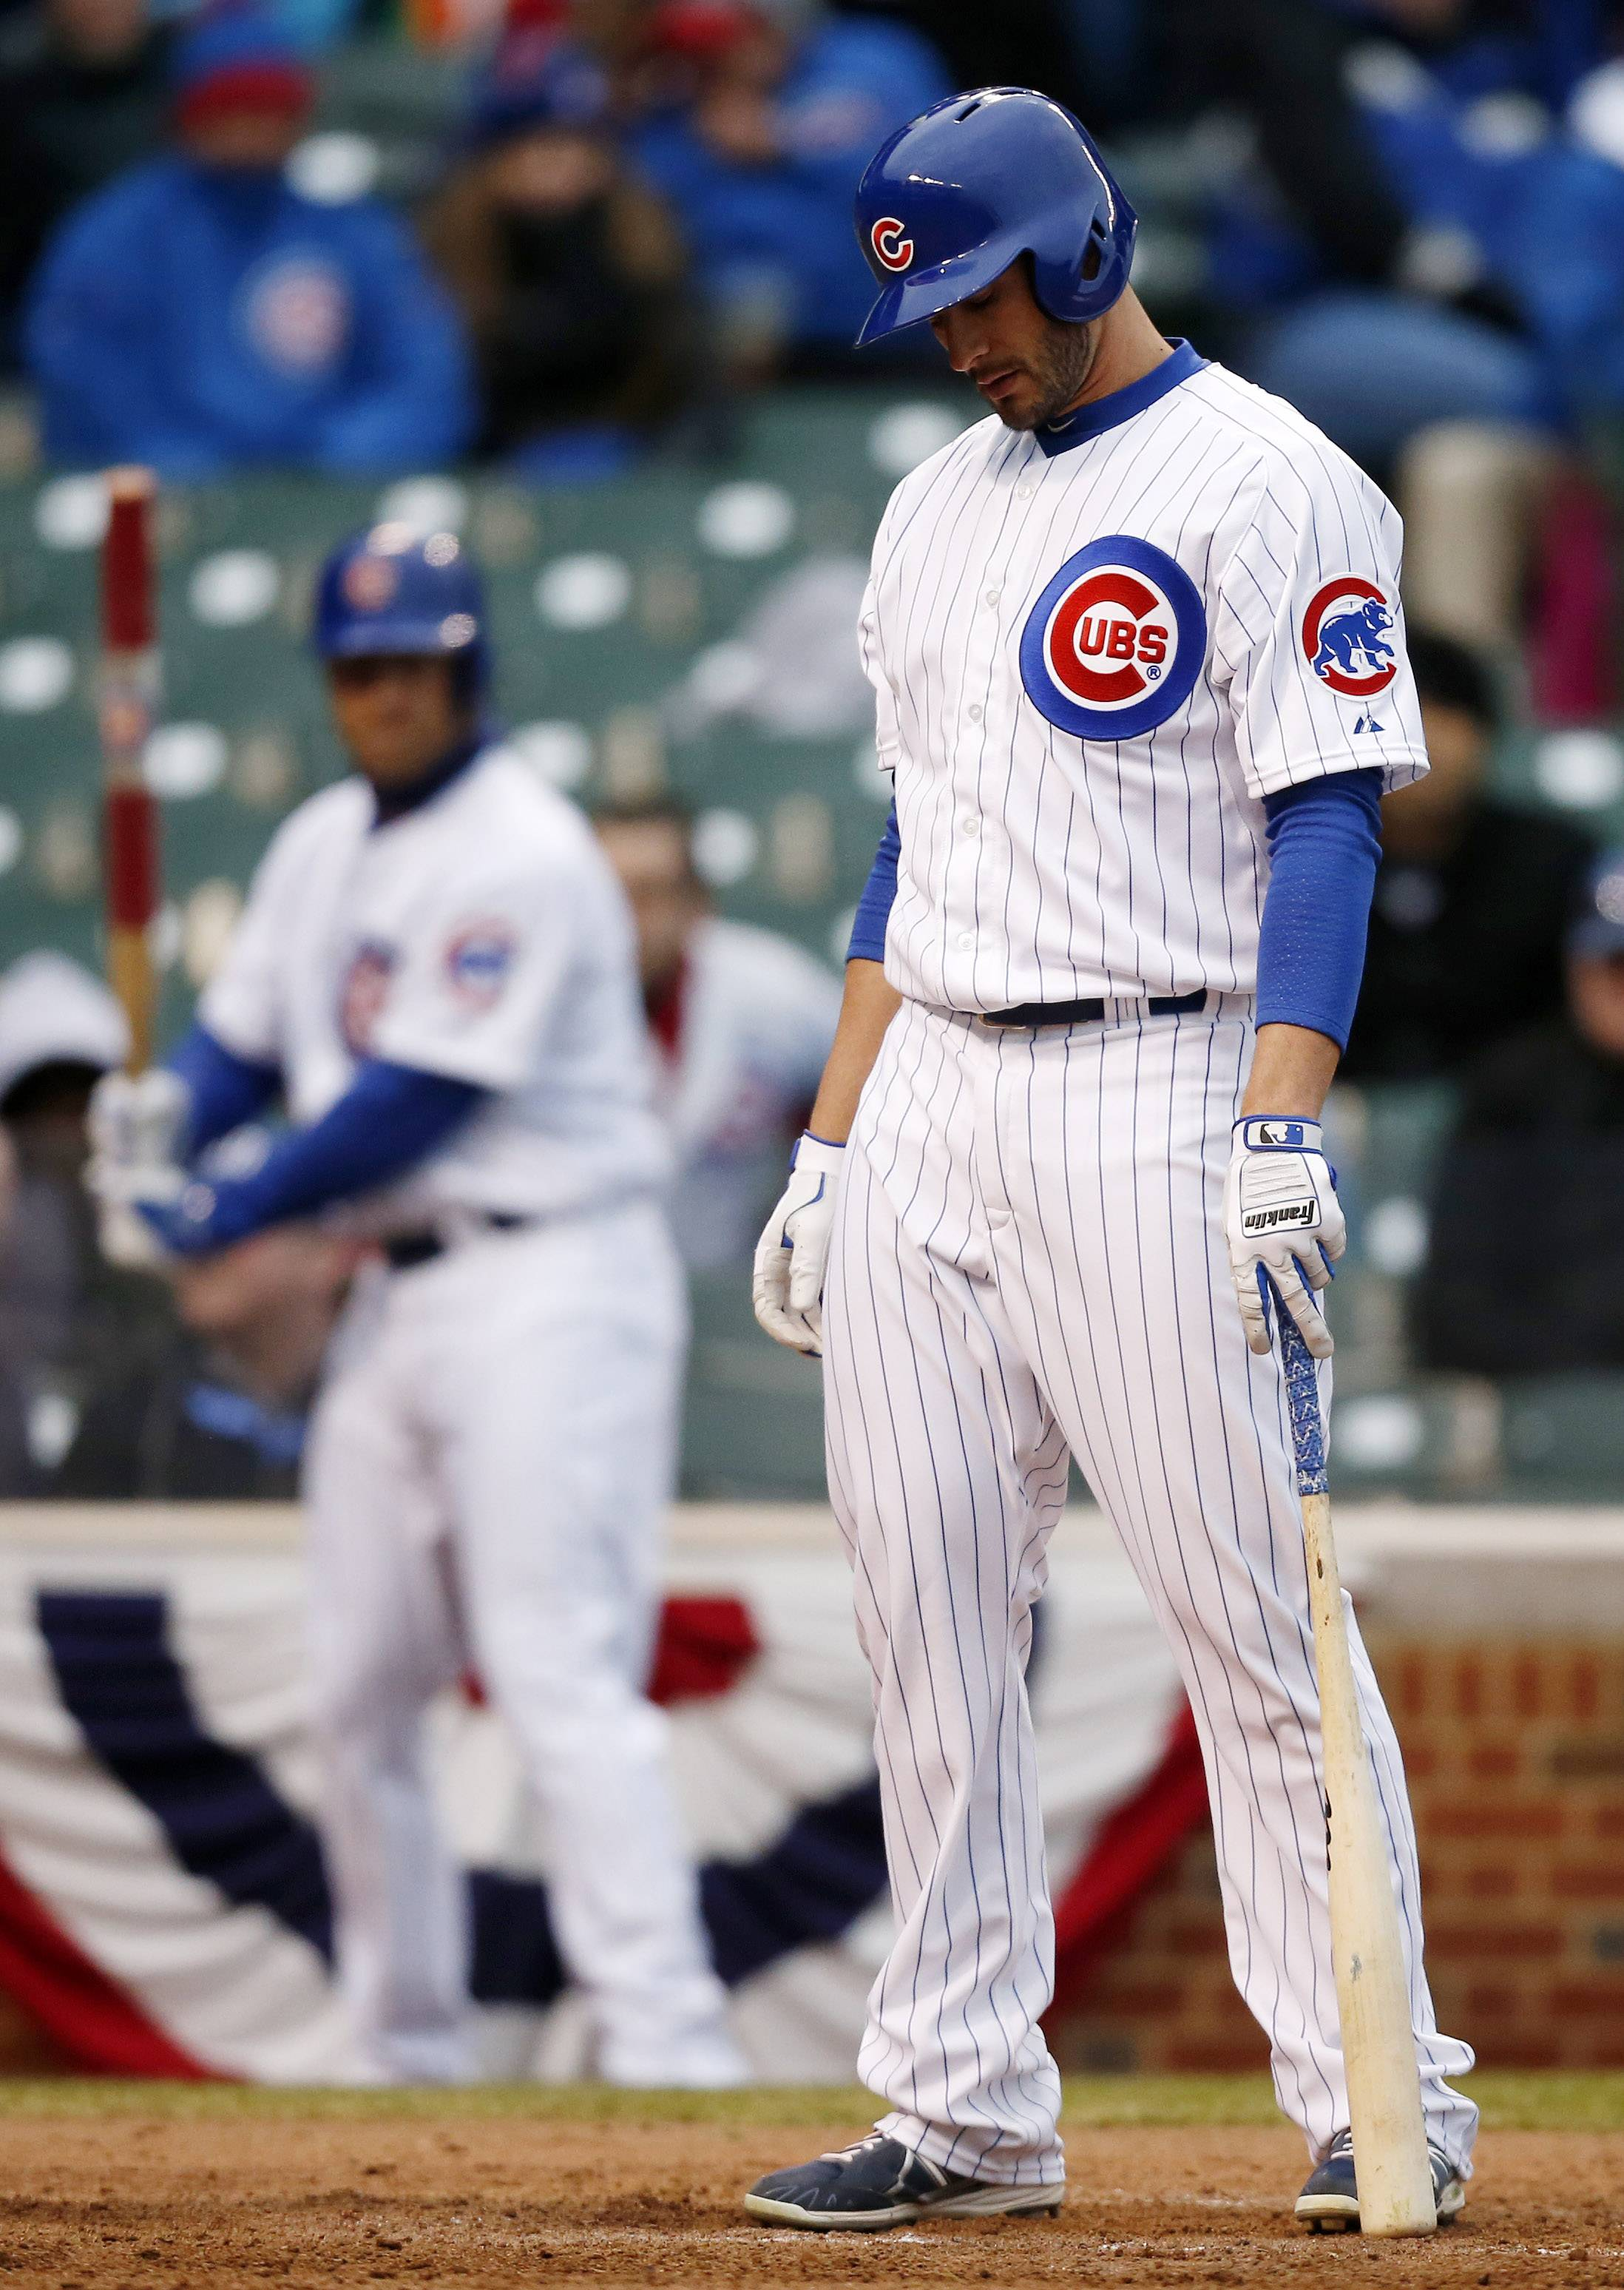 Chicago Cubs Justin Ruggiano reacts after striking out against the Philadelphia Phillies during the ninth inning of a baseball game on Friday, April 4, 2014, in Chicago. (AP Photo/Andrew A. Nelles)